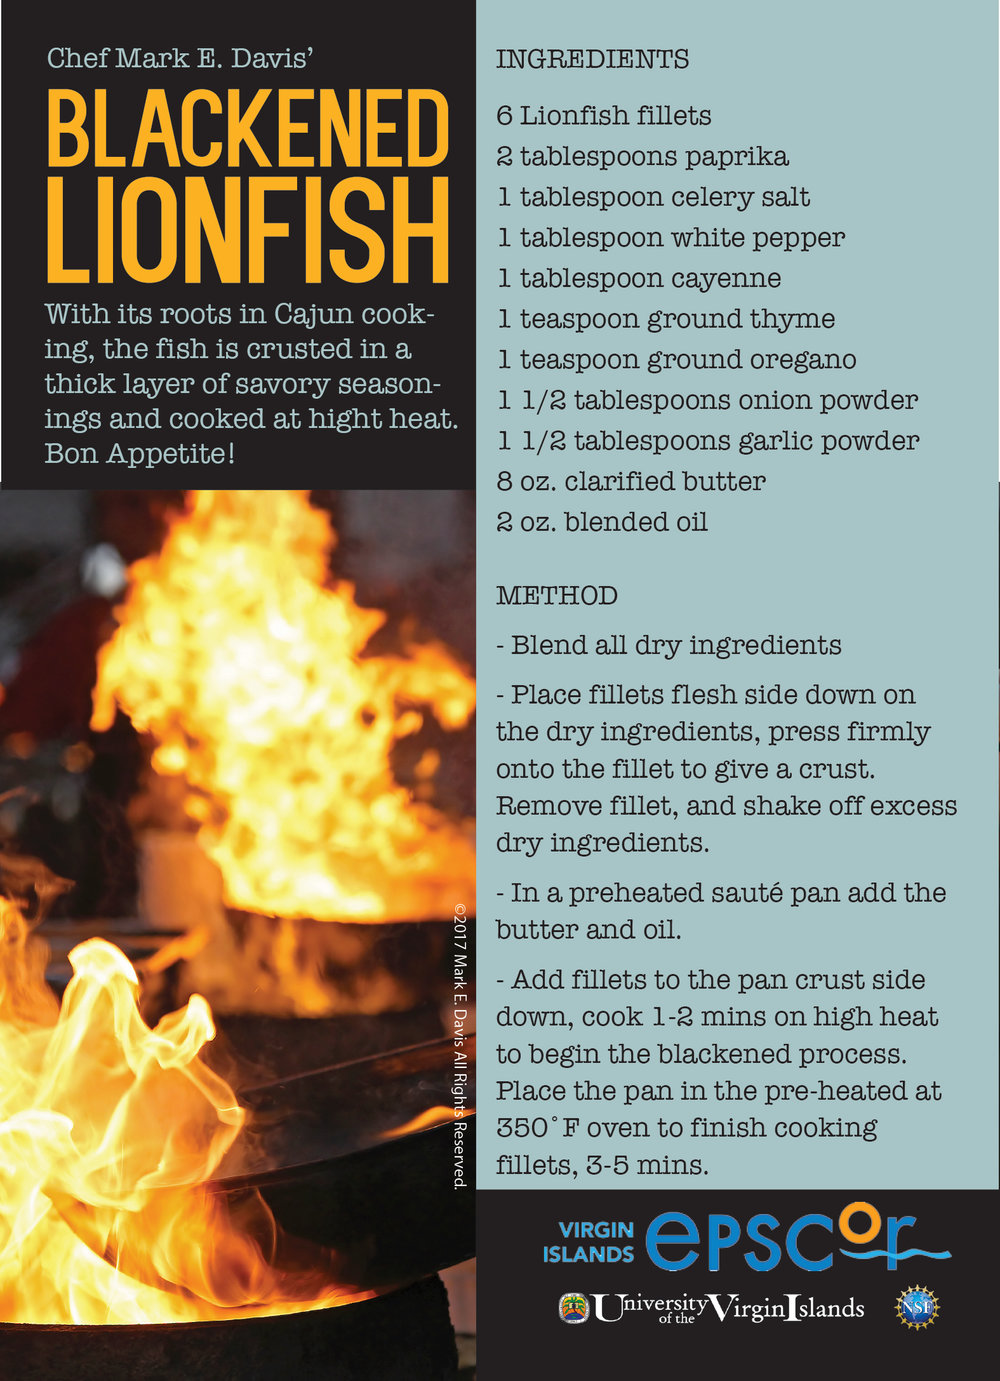 Blackened Lionfish Recipe courtesy of Chef Byron and Chef Mark